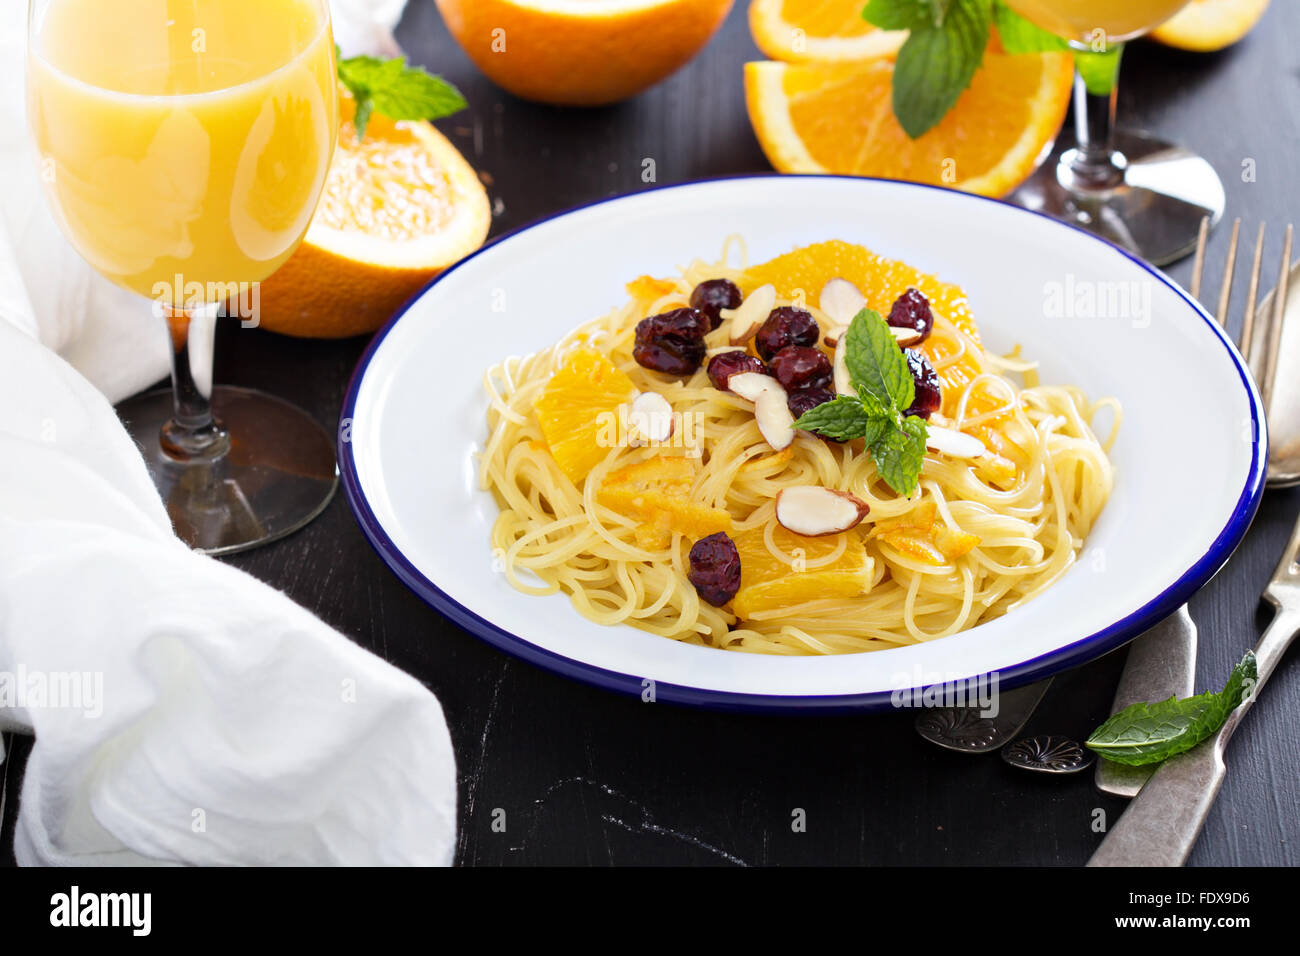 Dessert pasta with orange and dried cherry - Stock Image